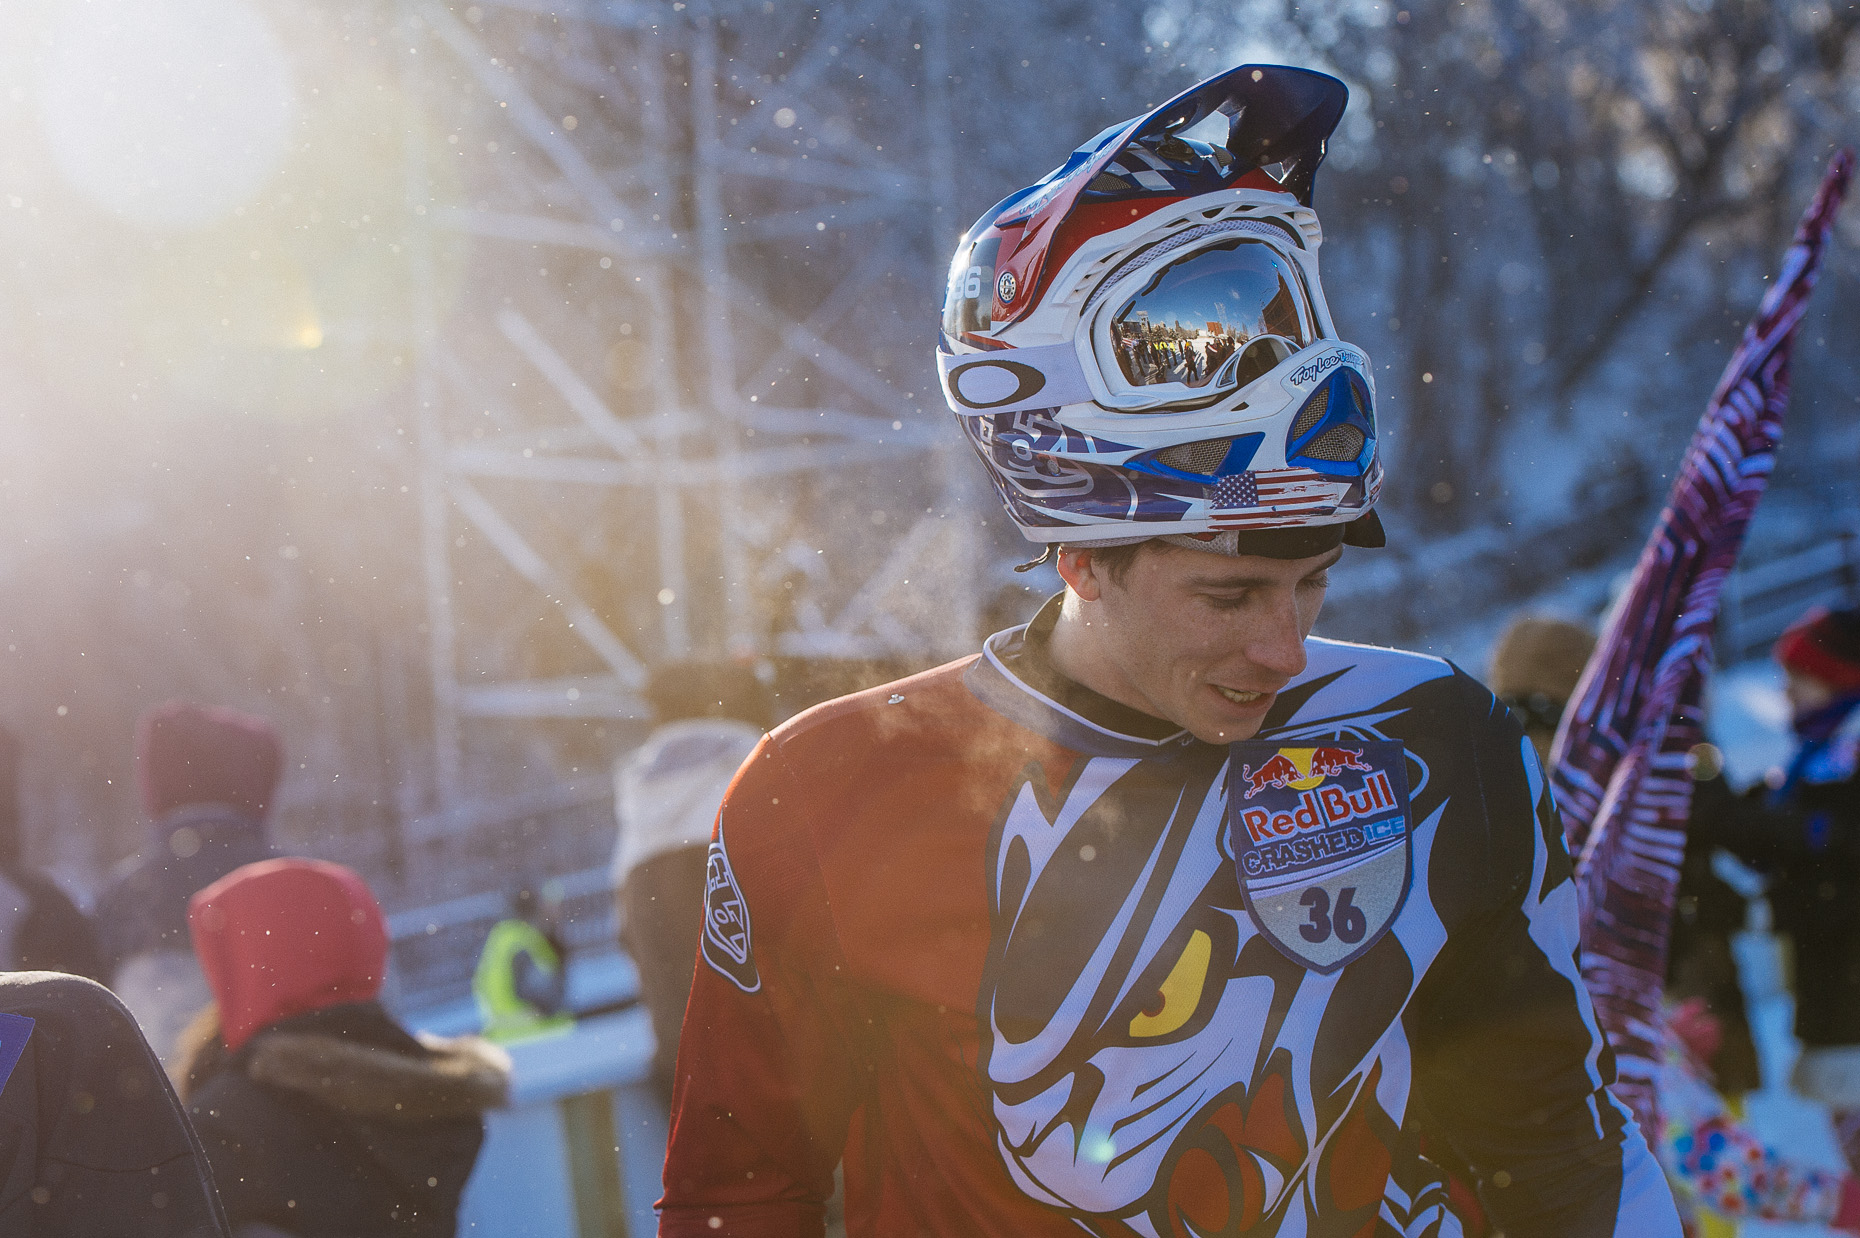 RT_crashedice-stp_2102143026.jpg